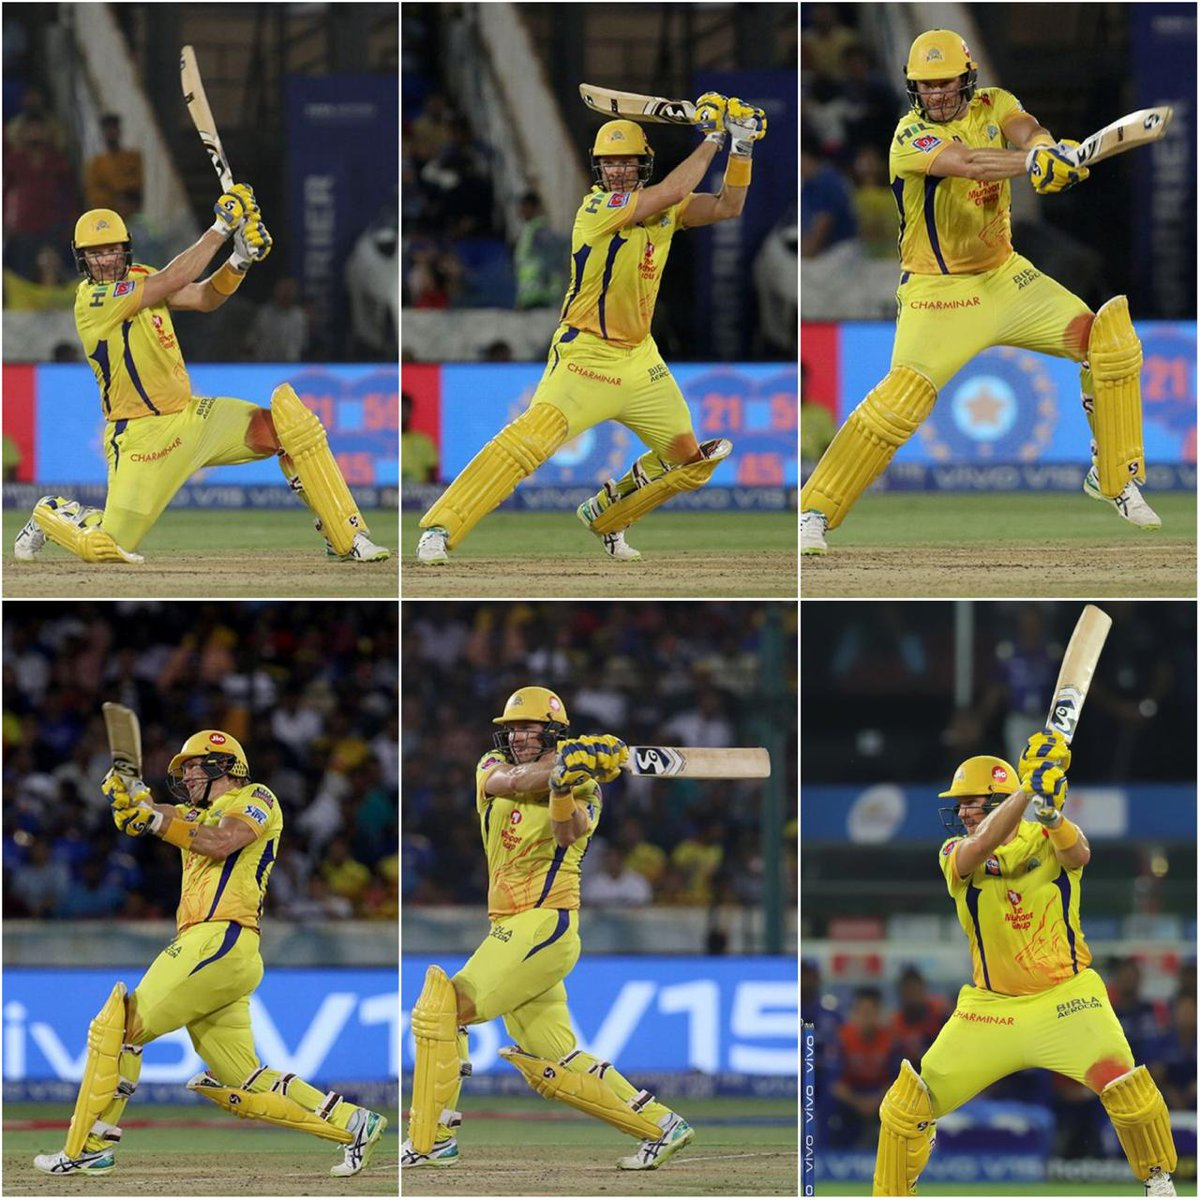 This picture has a separate fan base. One of the most emotional moment ever. Shanesational #WattoMan forever💛🦁  #Throwback #IPL2020 #Yellove #CSK  @ShaneRWatson33 @ChennaiIPL